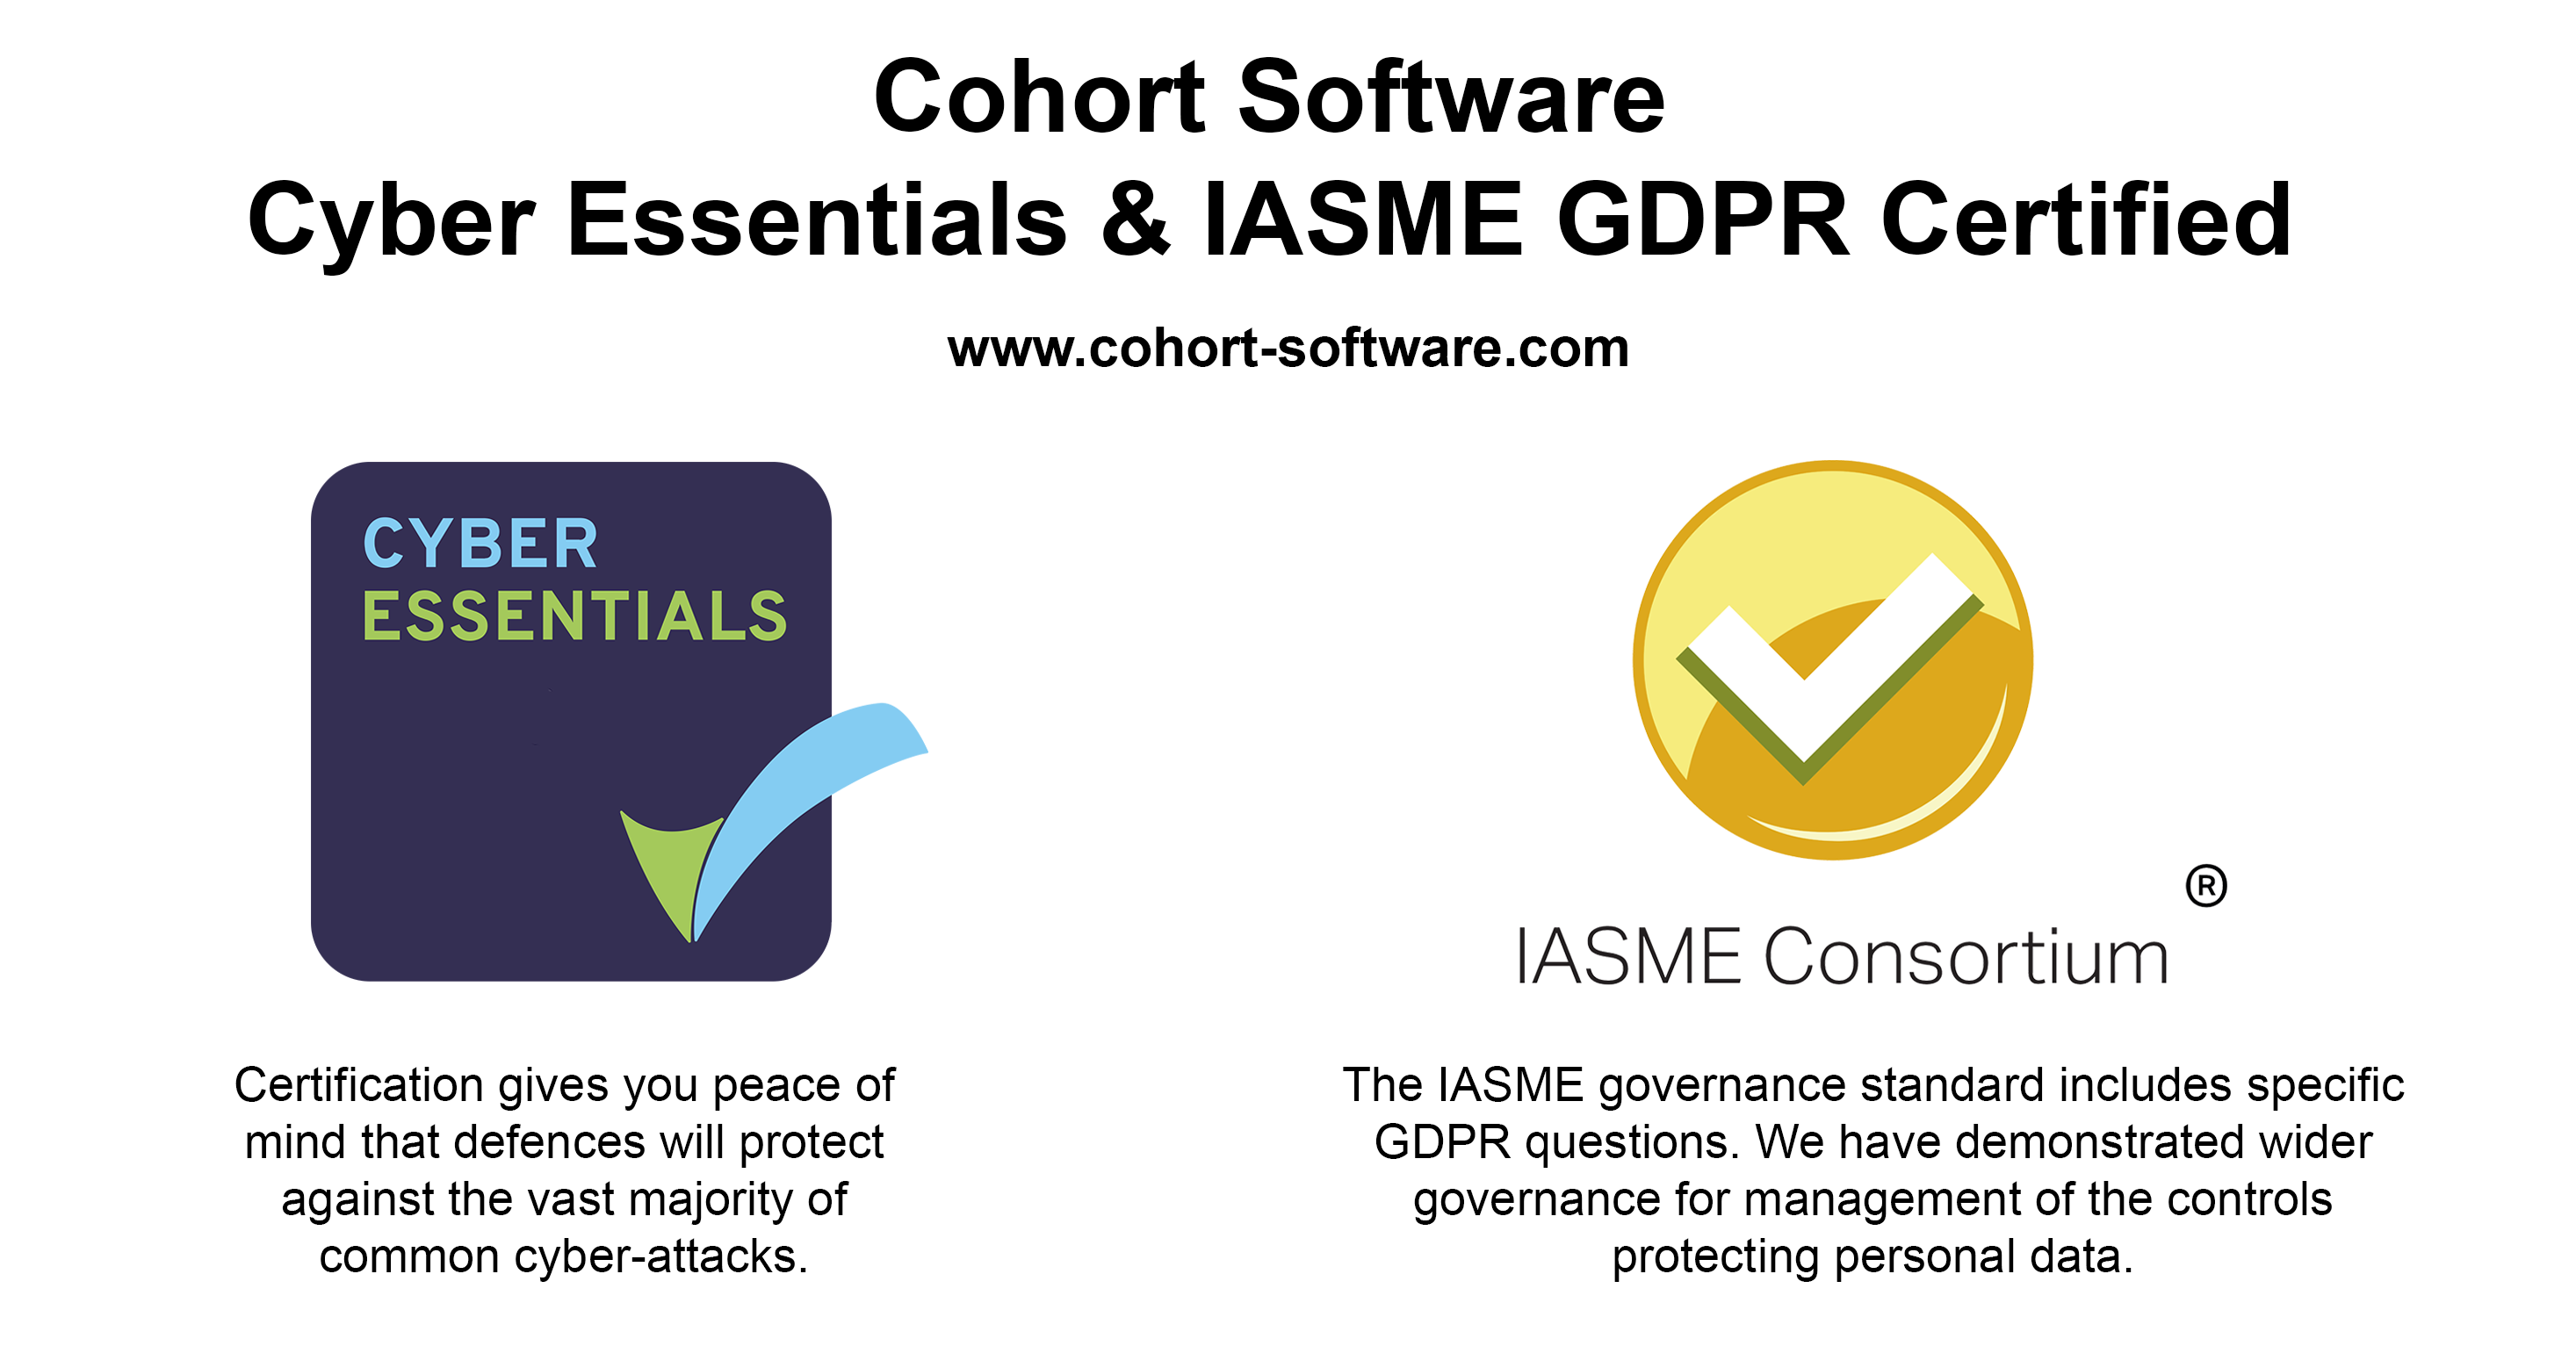 Cyber Essentials and IASME GDPR certifications achieved by Cohort Software